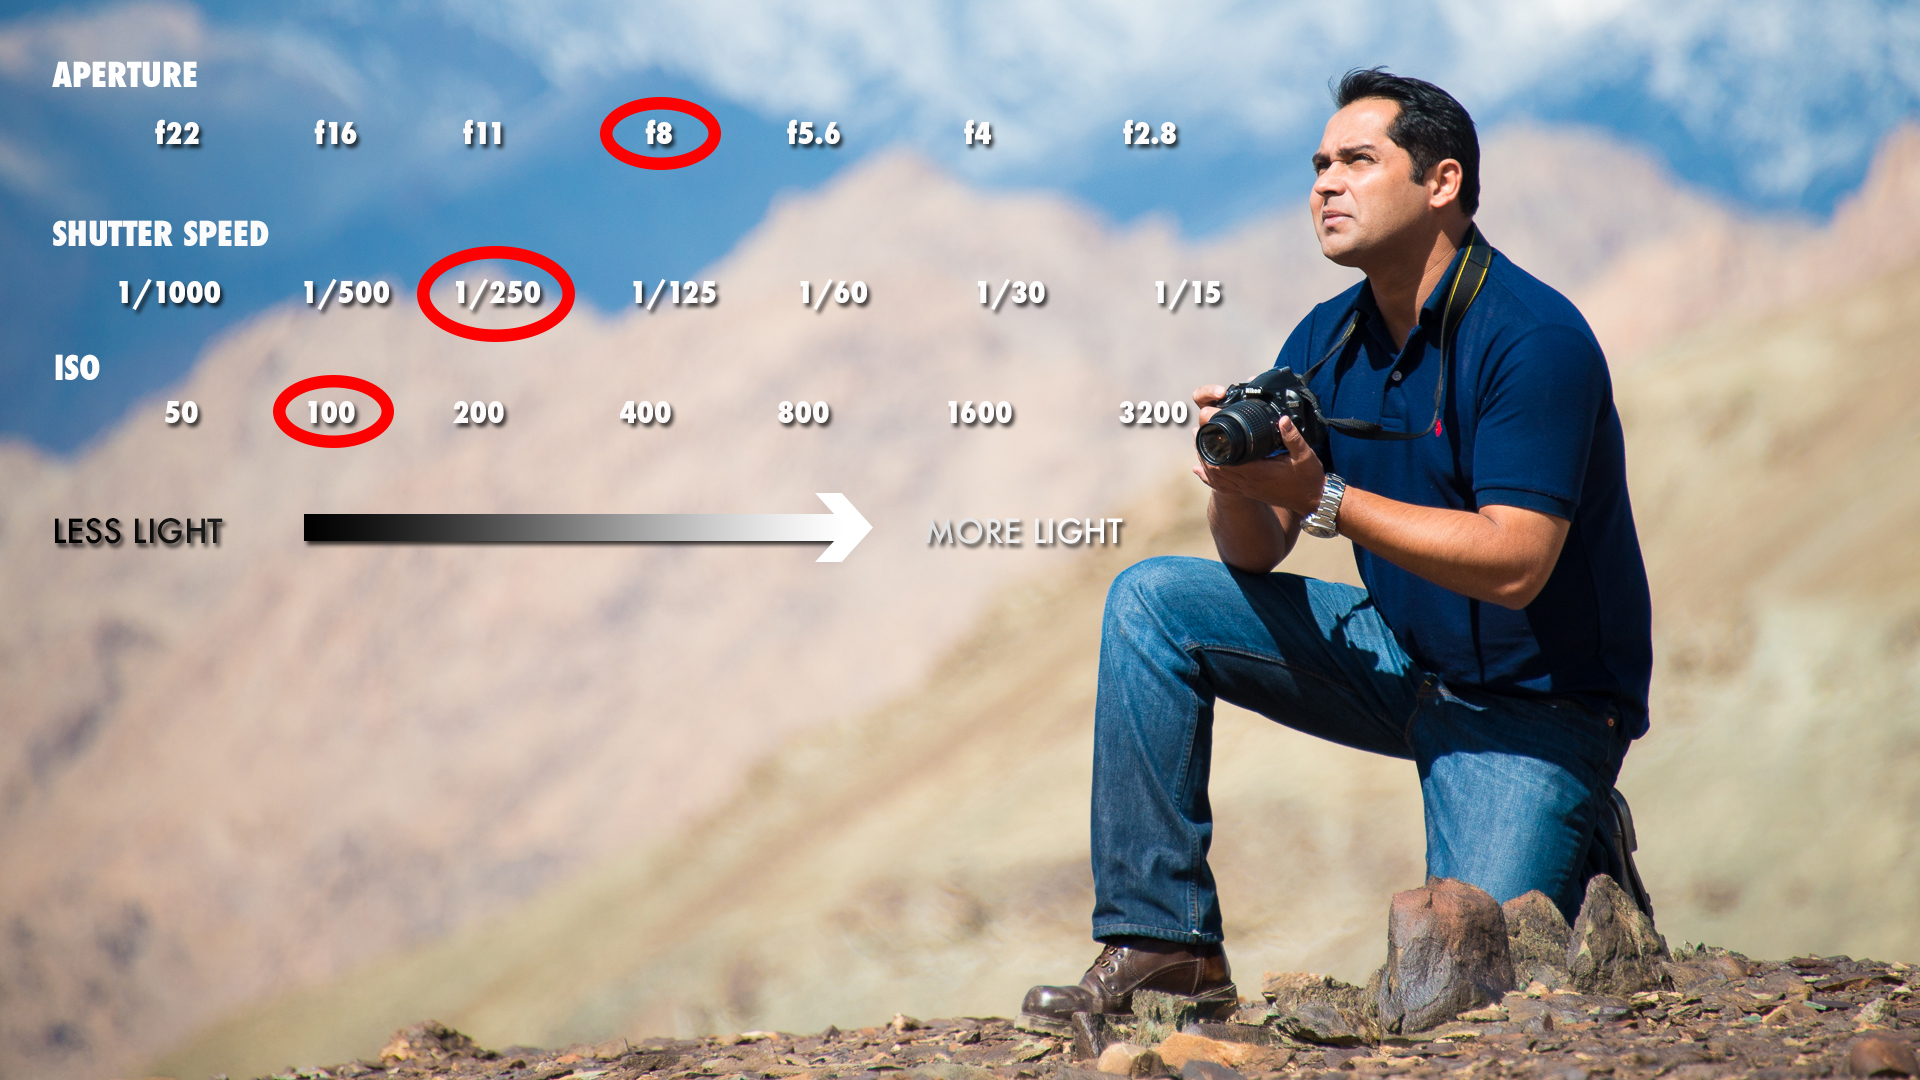 ISO shutter speed and aperture relationship - overexposed